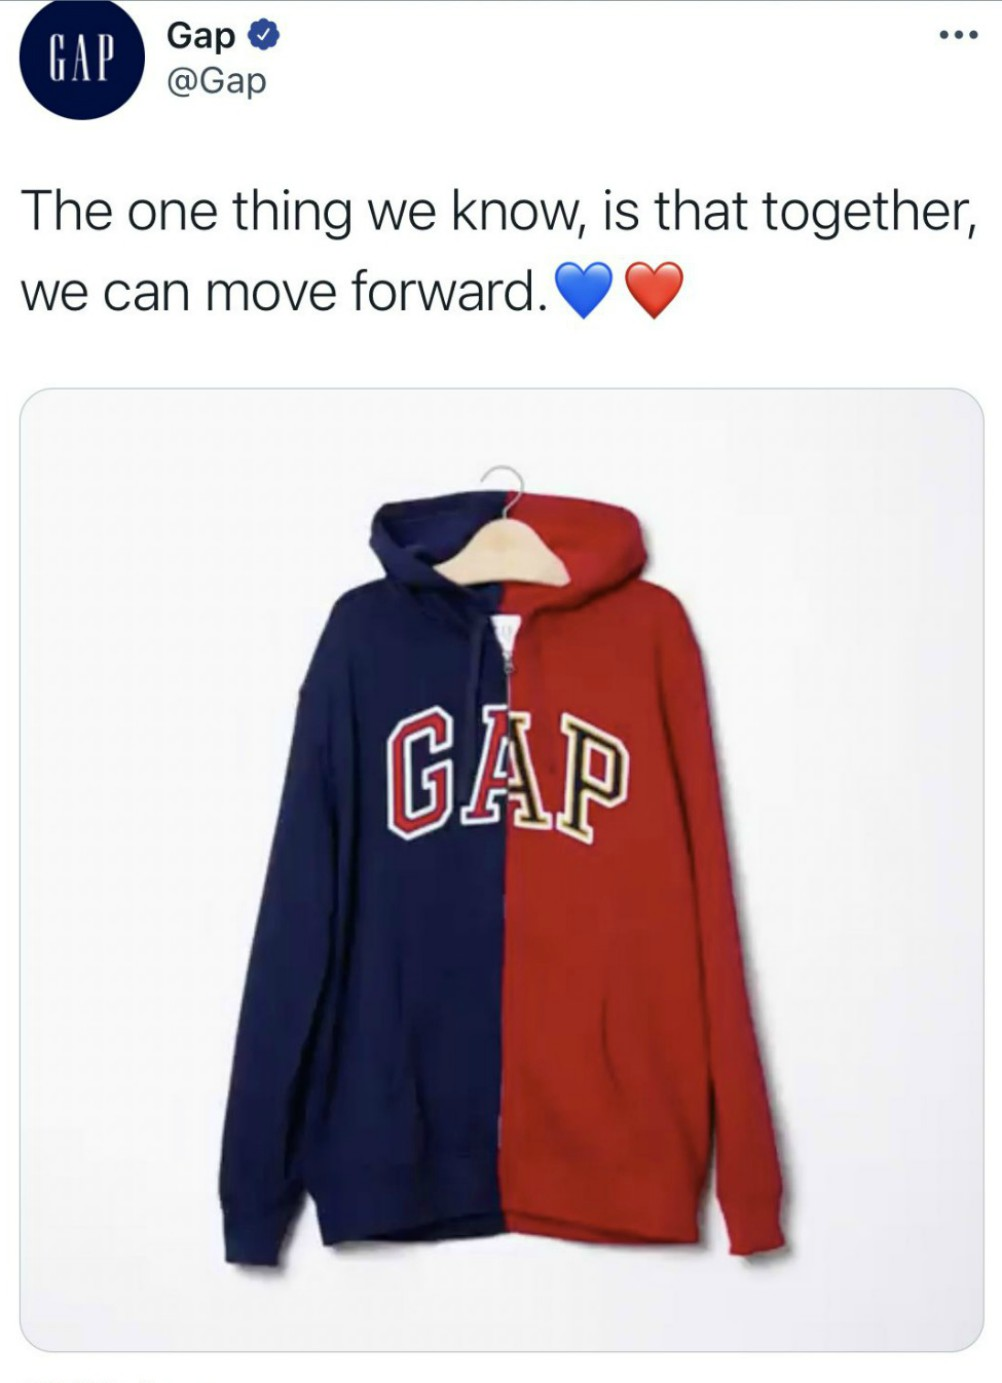 Gap faced backlash over a post-Election Day tweet aimed at easing voter anxieties.